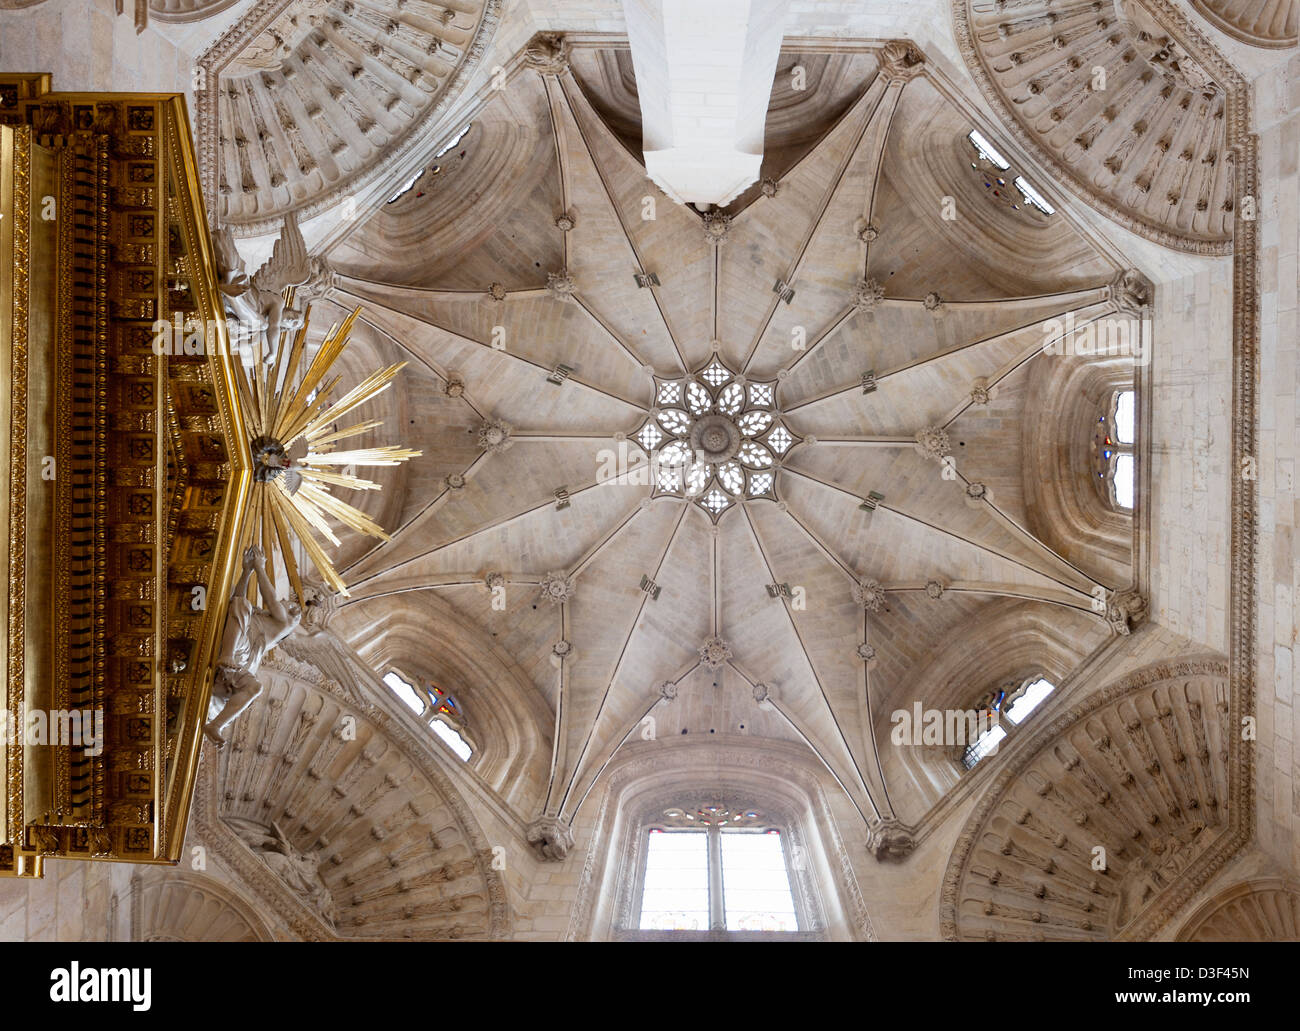 One of the cupolas in the burgos cathedral - Stock Image